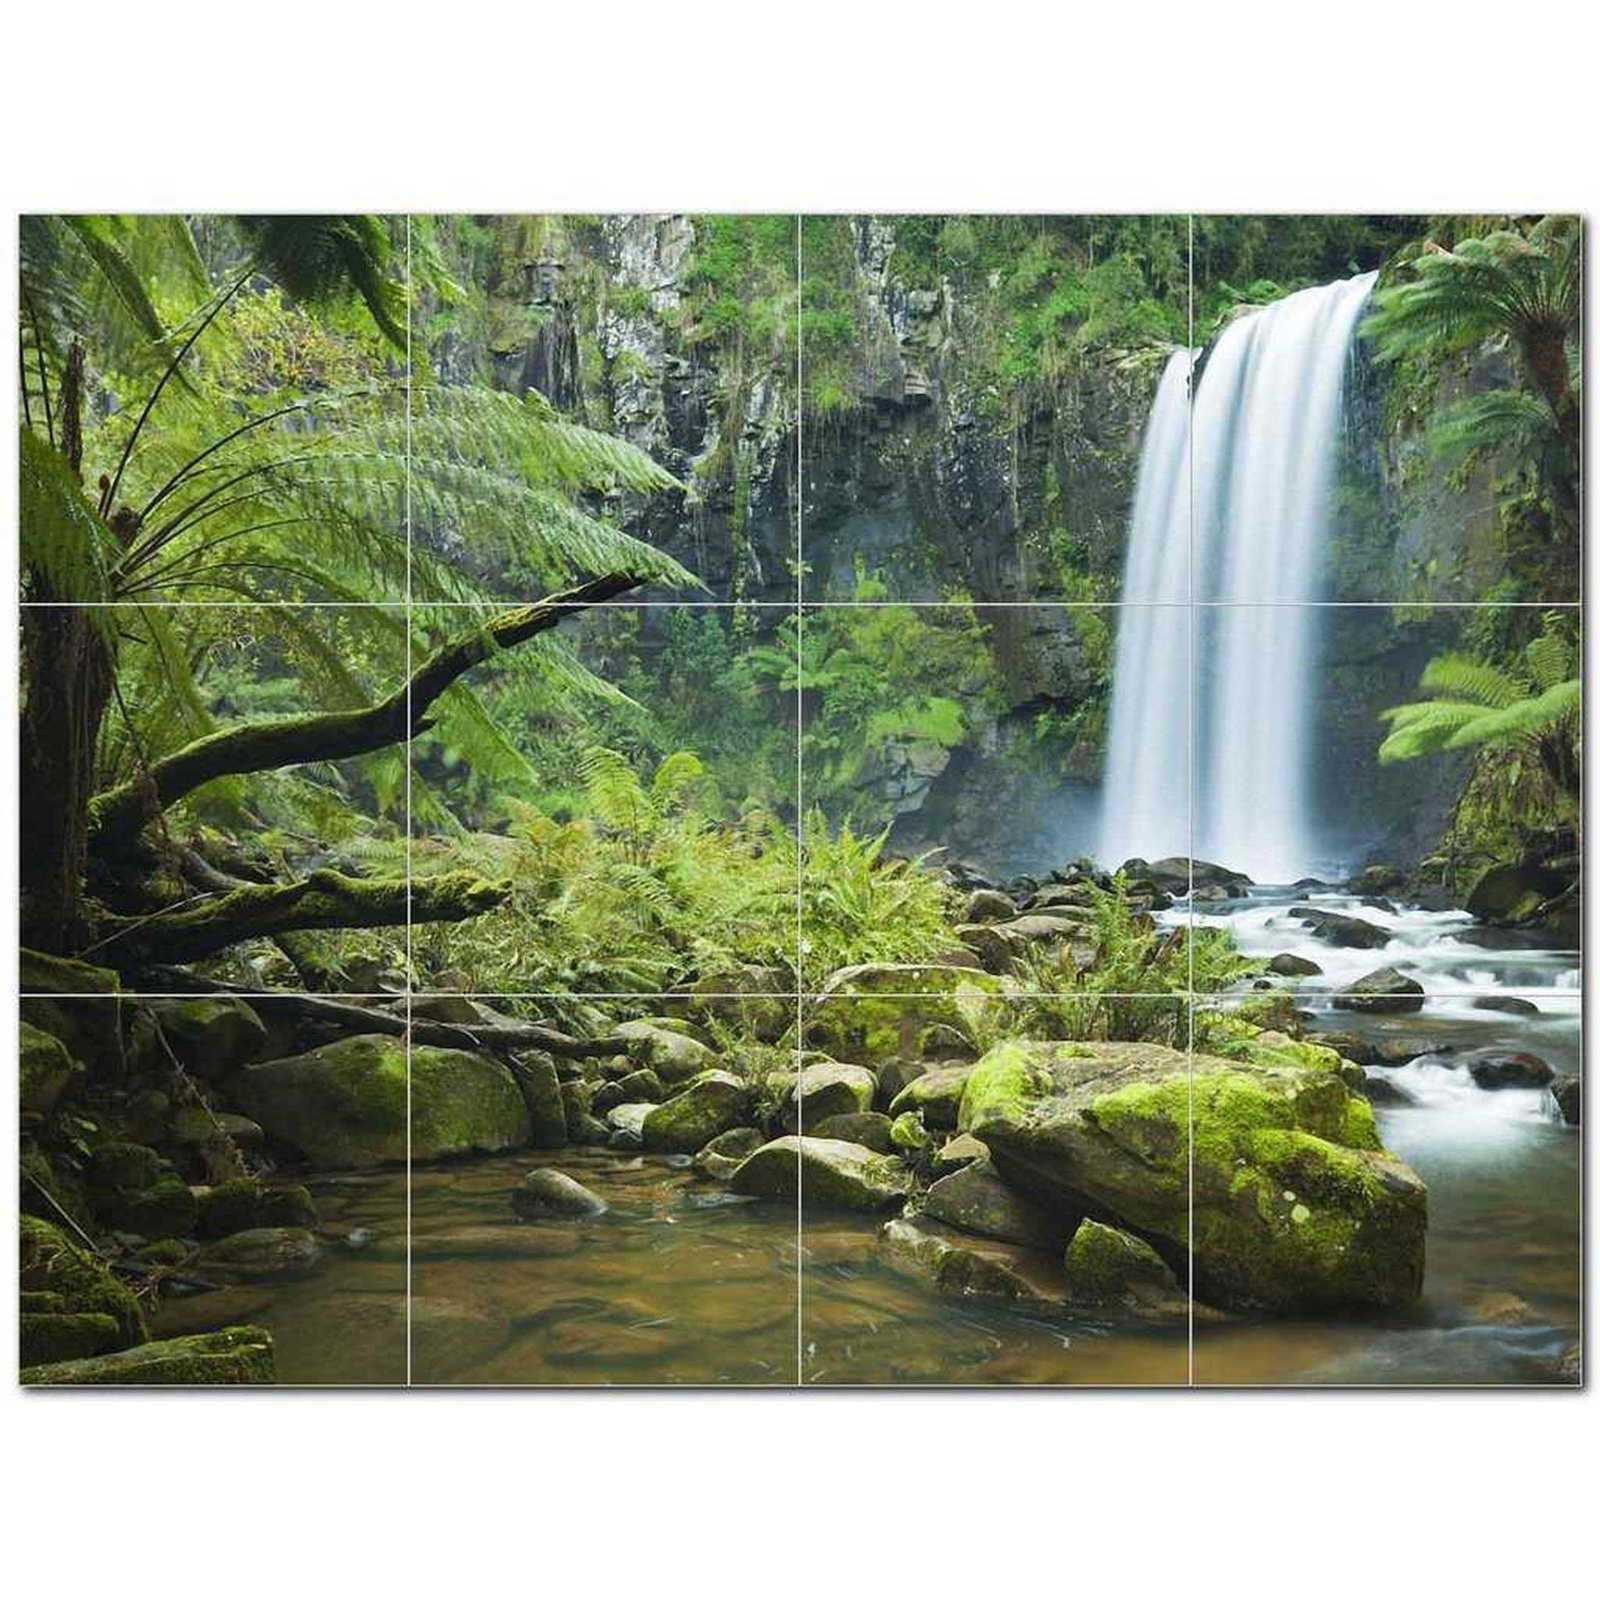 Primary image for Waterfall Photo Ceramic Tile Mural Kitchen Backsplash Bathroom Shower BAZ406144